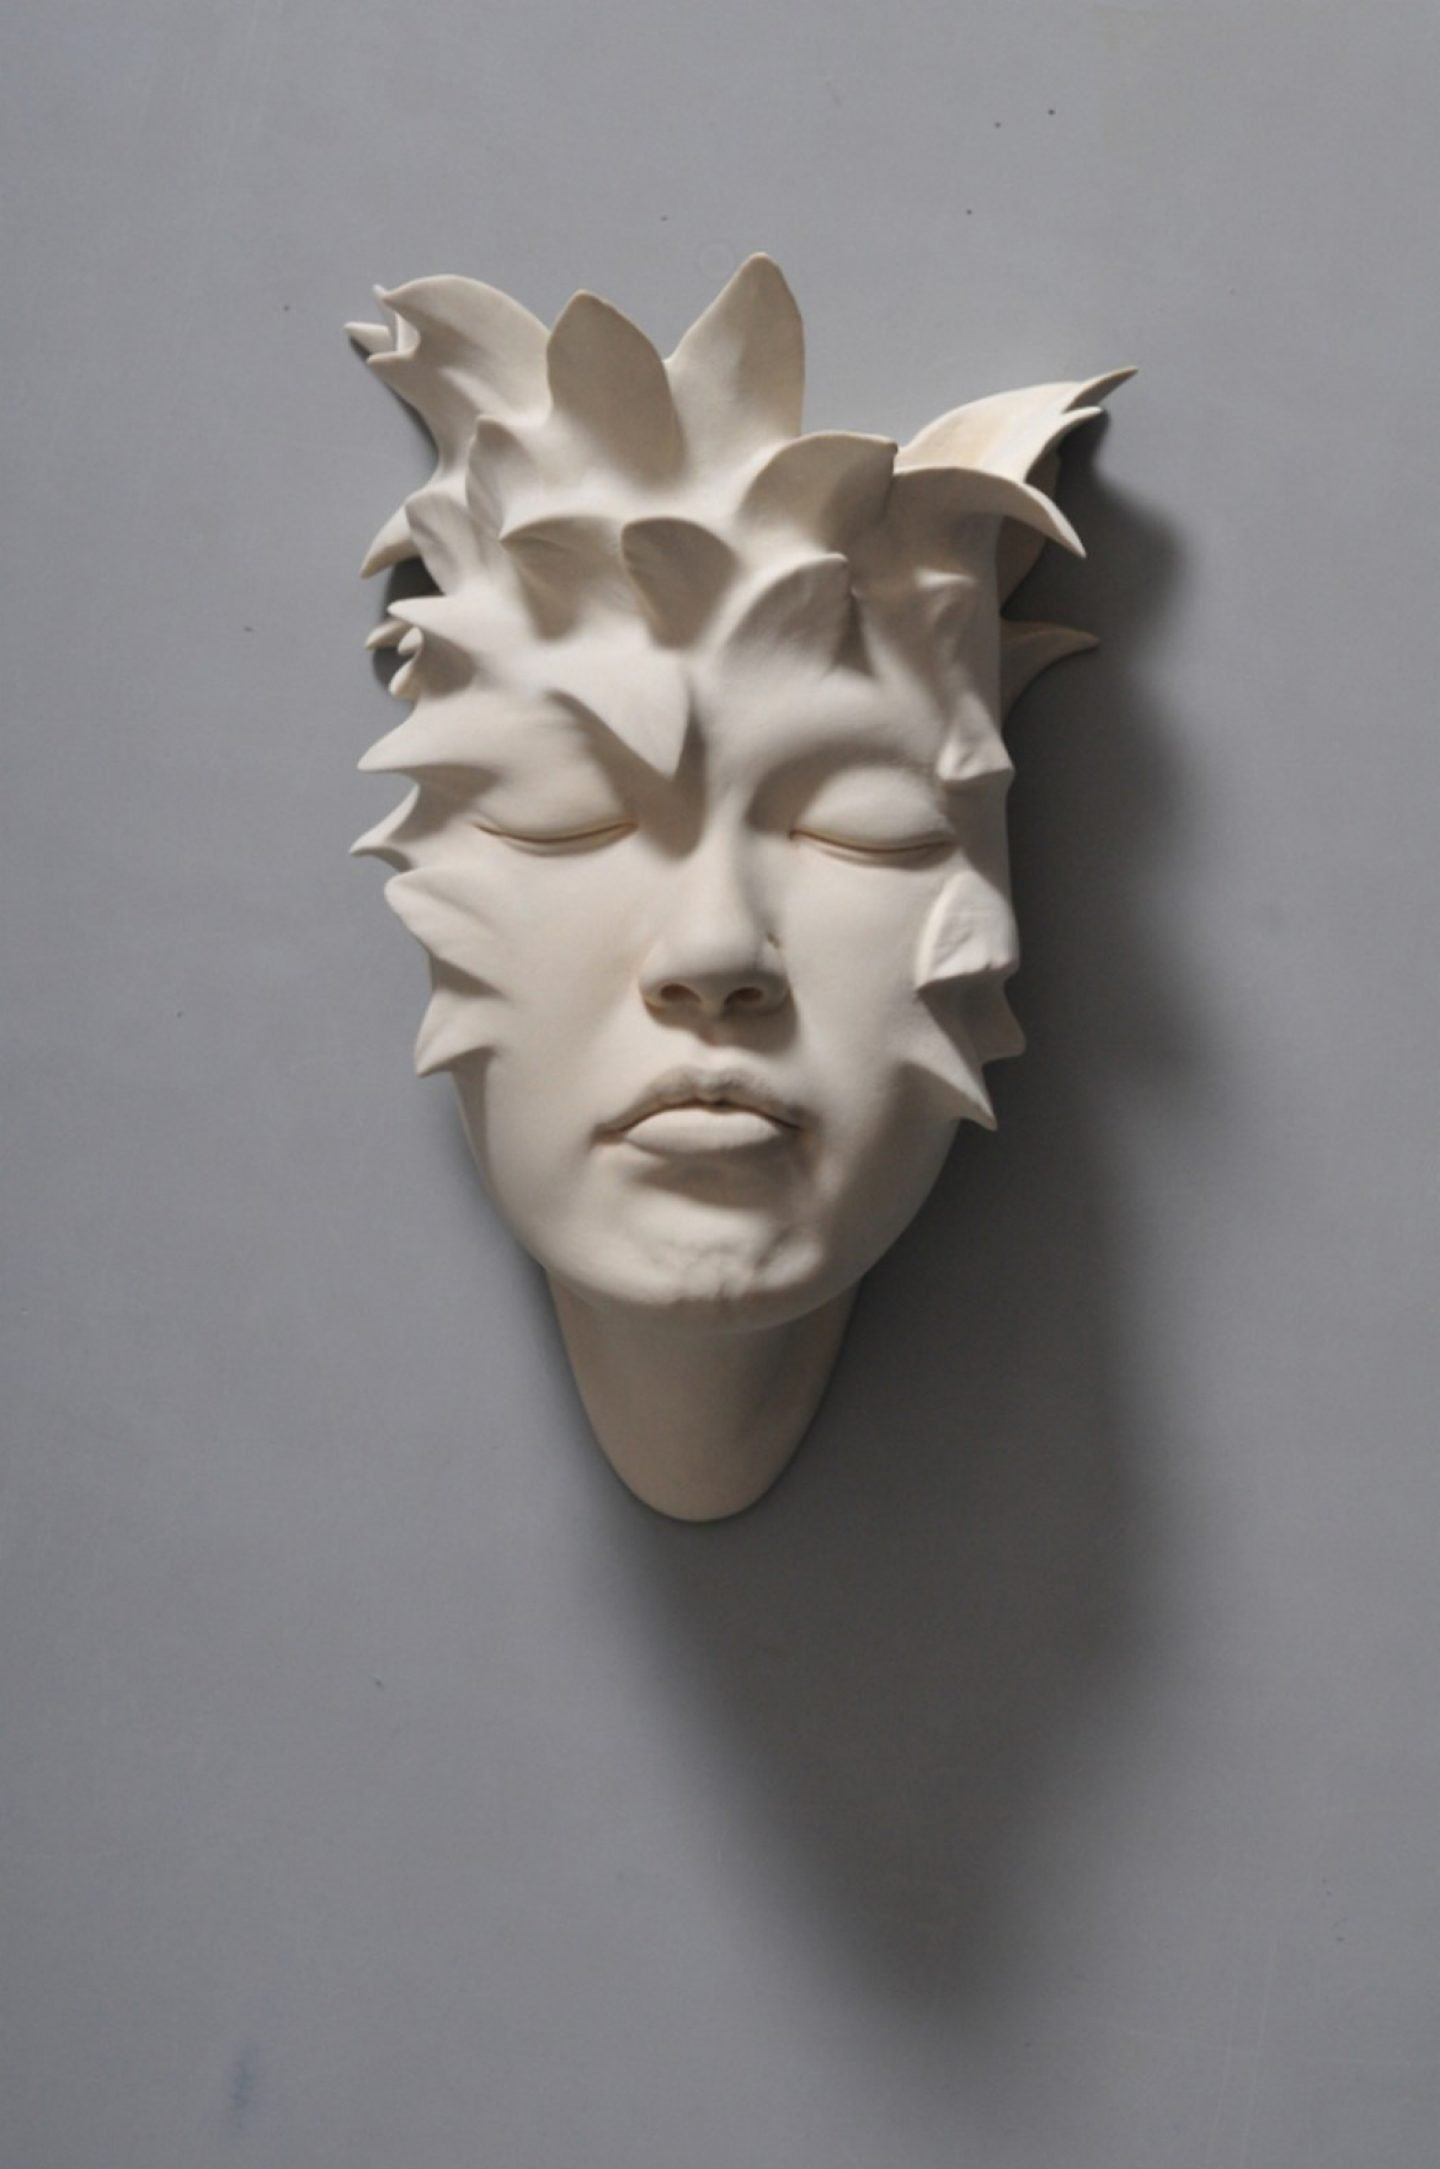 Johnson_Tsang_Art (1)